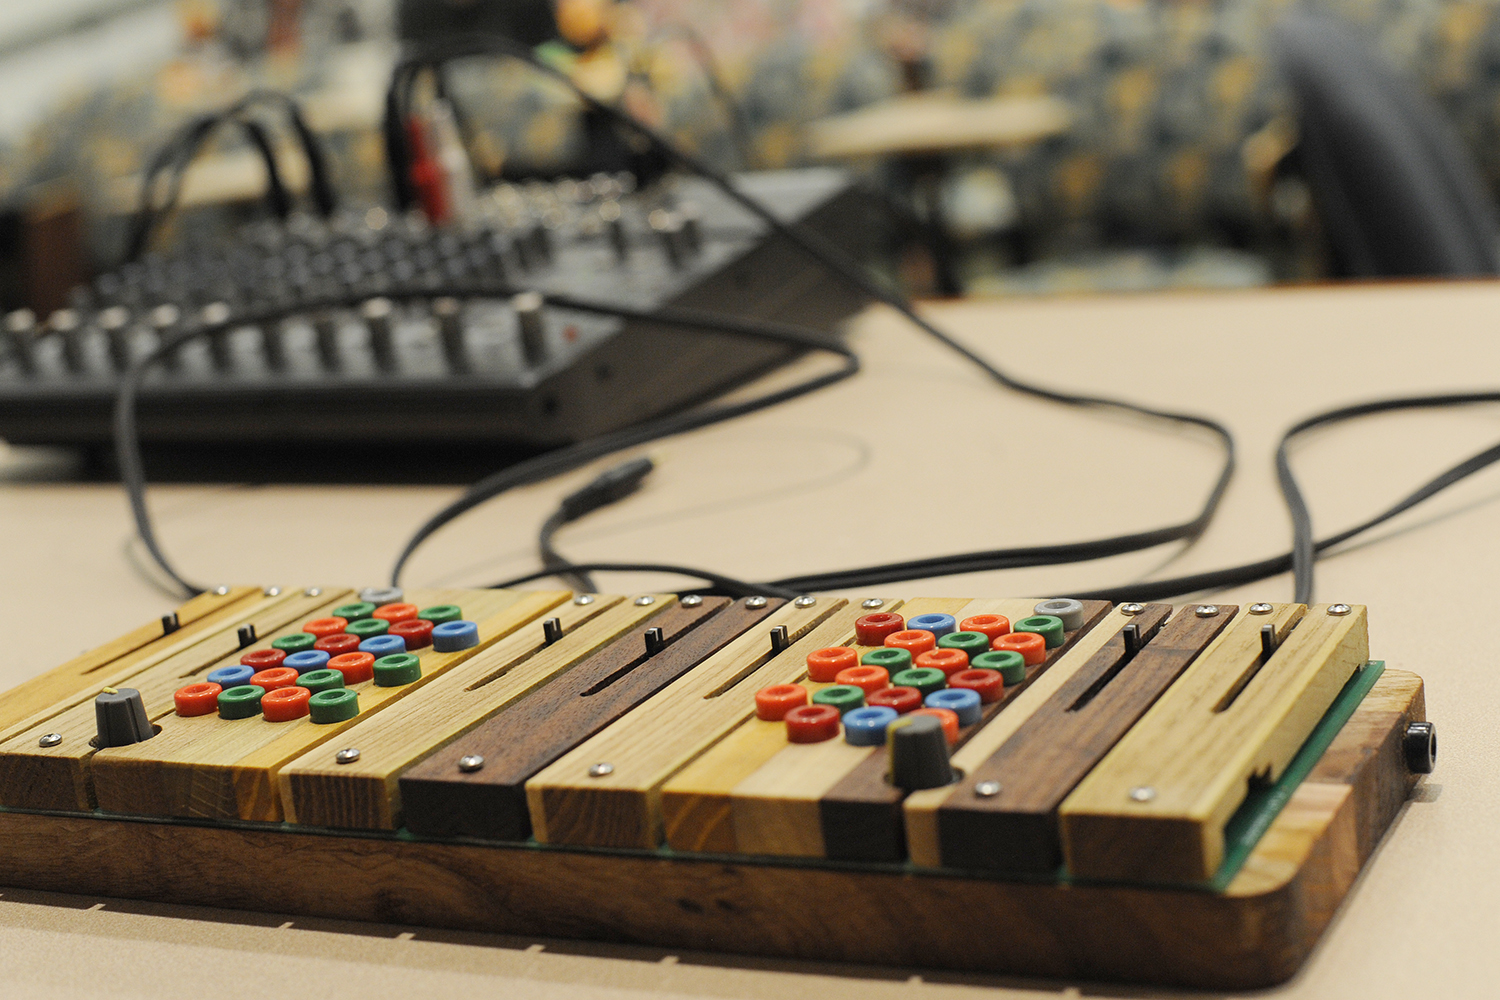 A finished instrument connected and ready to play.